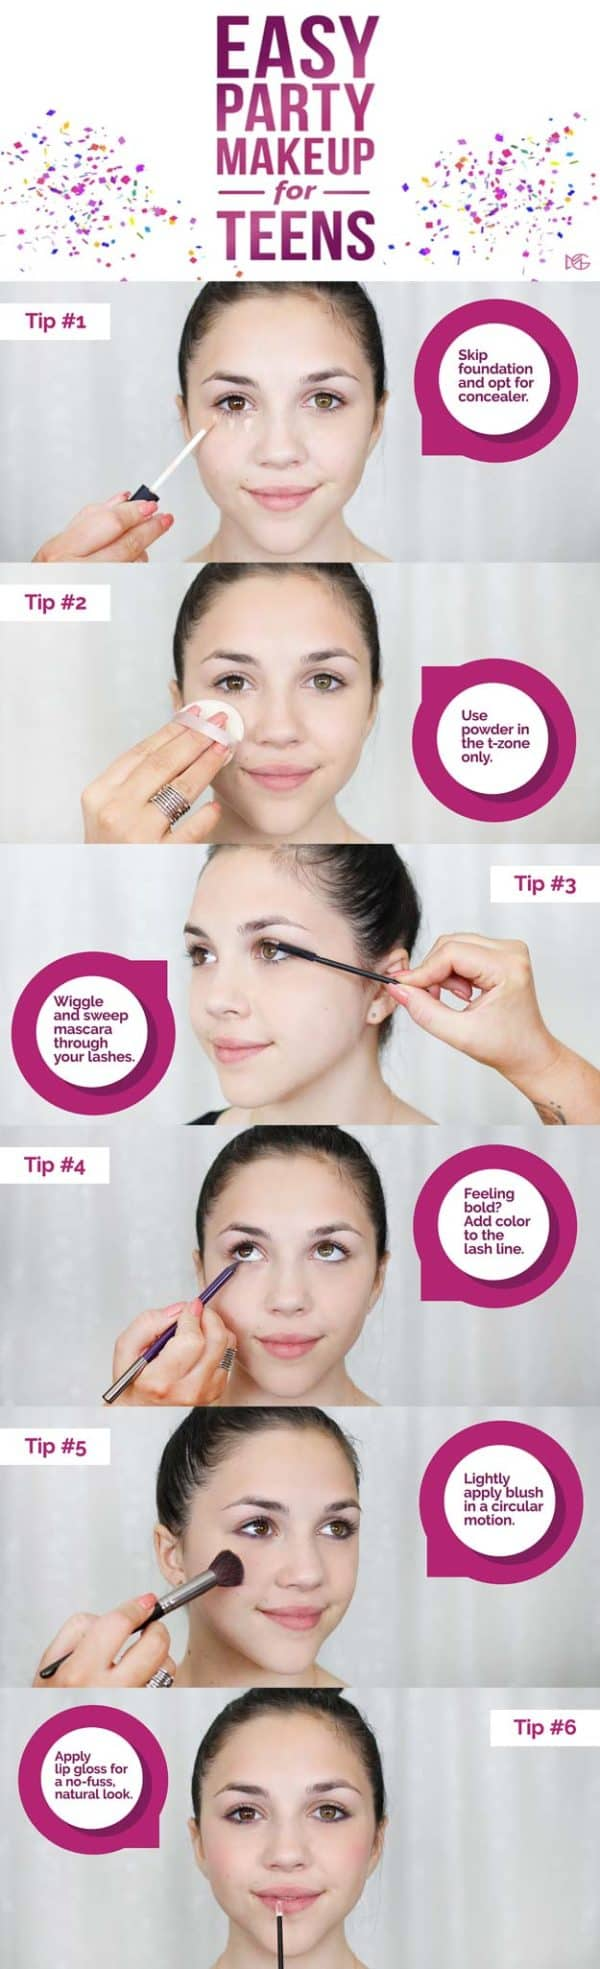 Sweet Teen Makeup Ideas That Every Girl Should Check Out